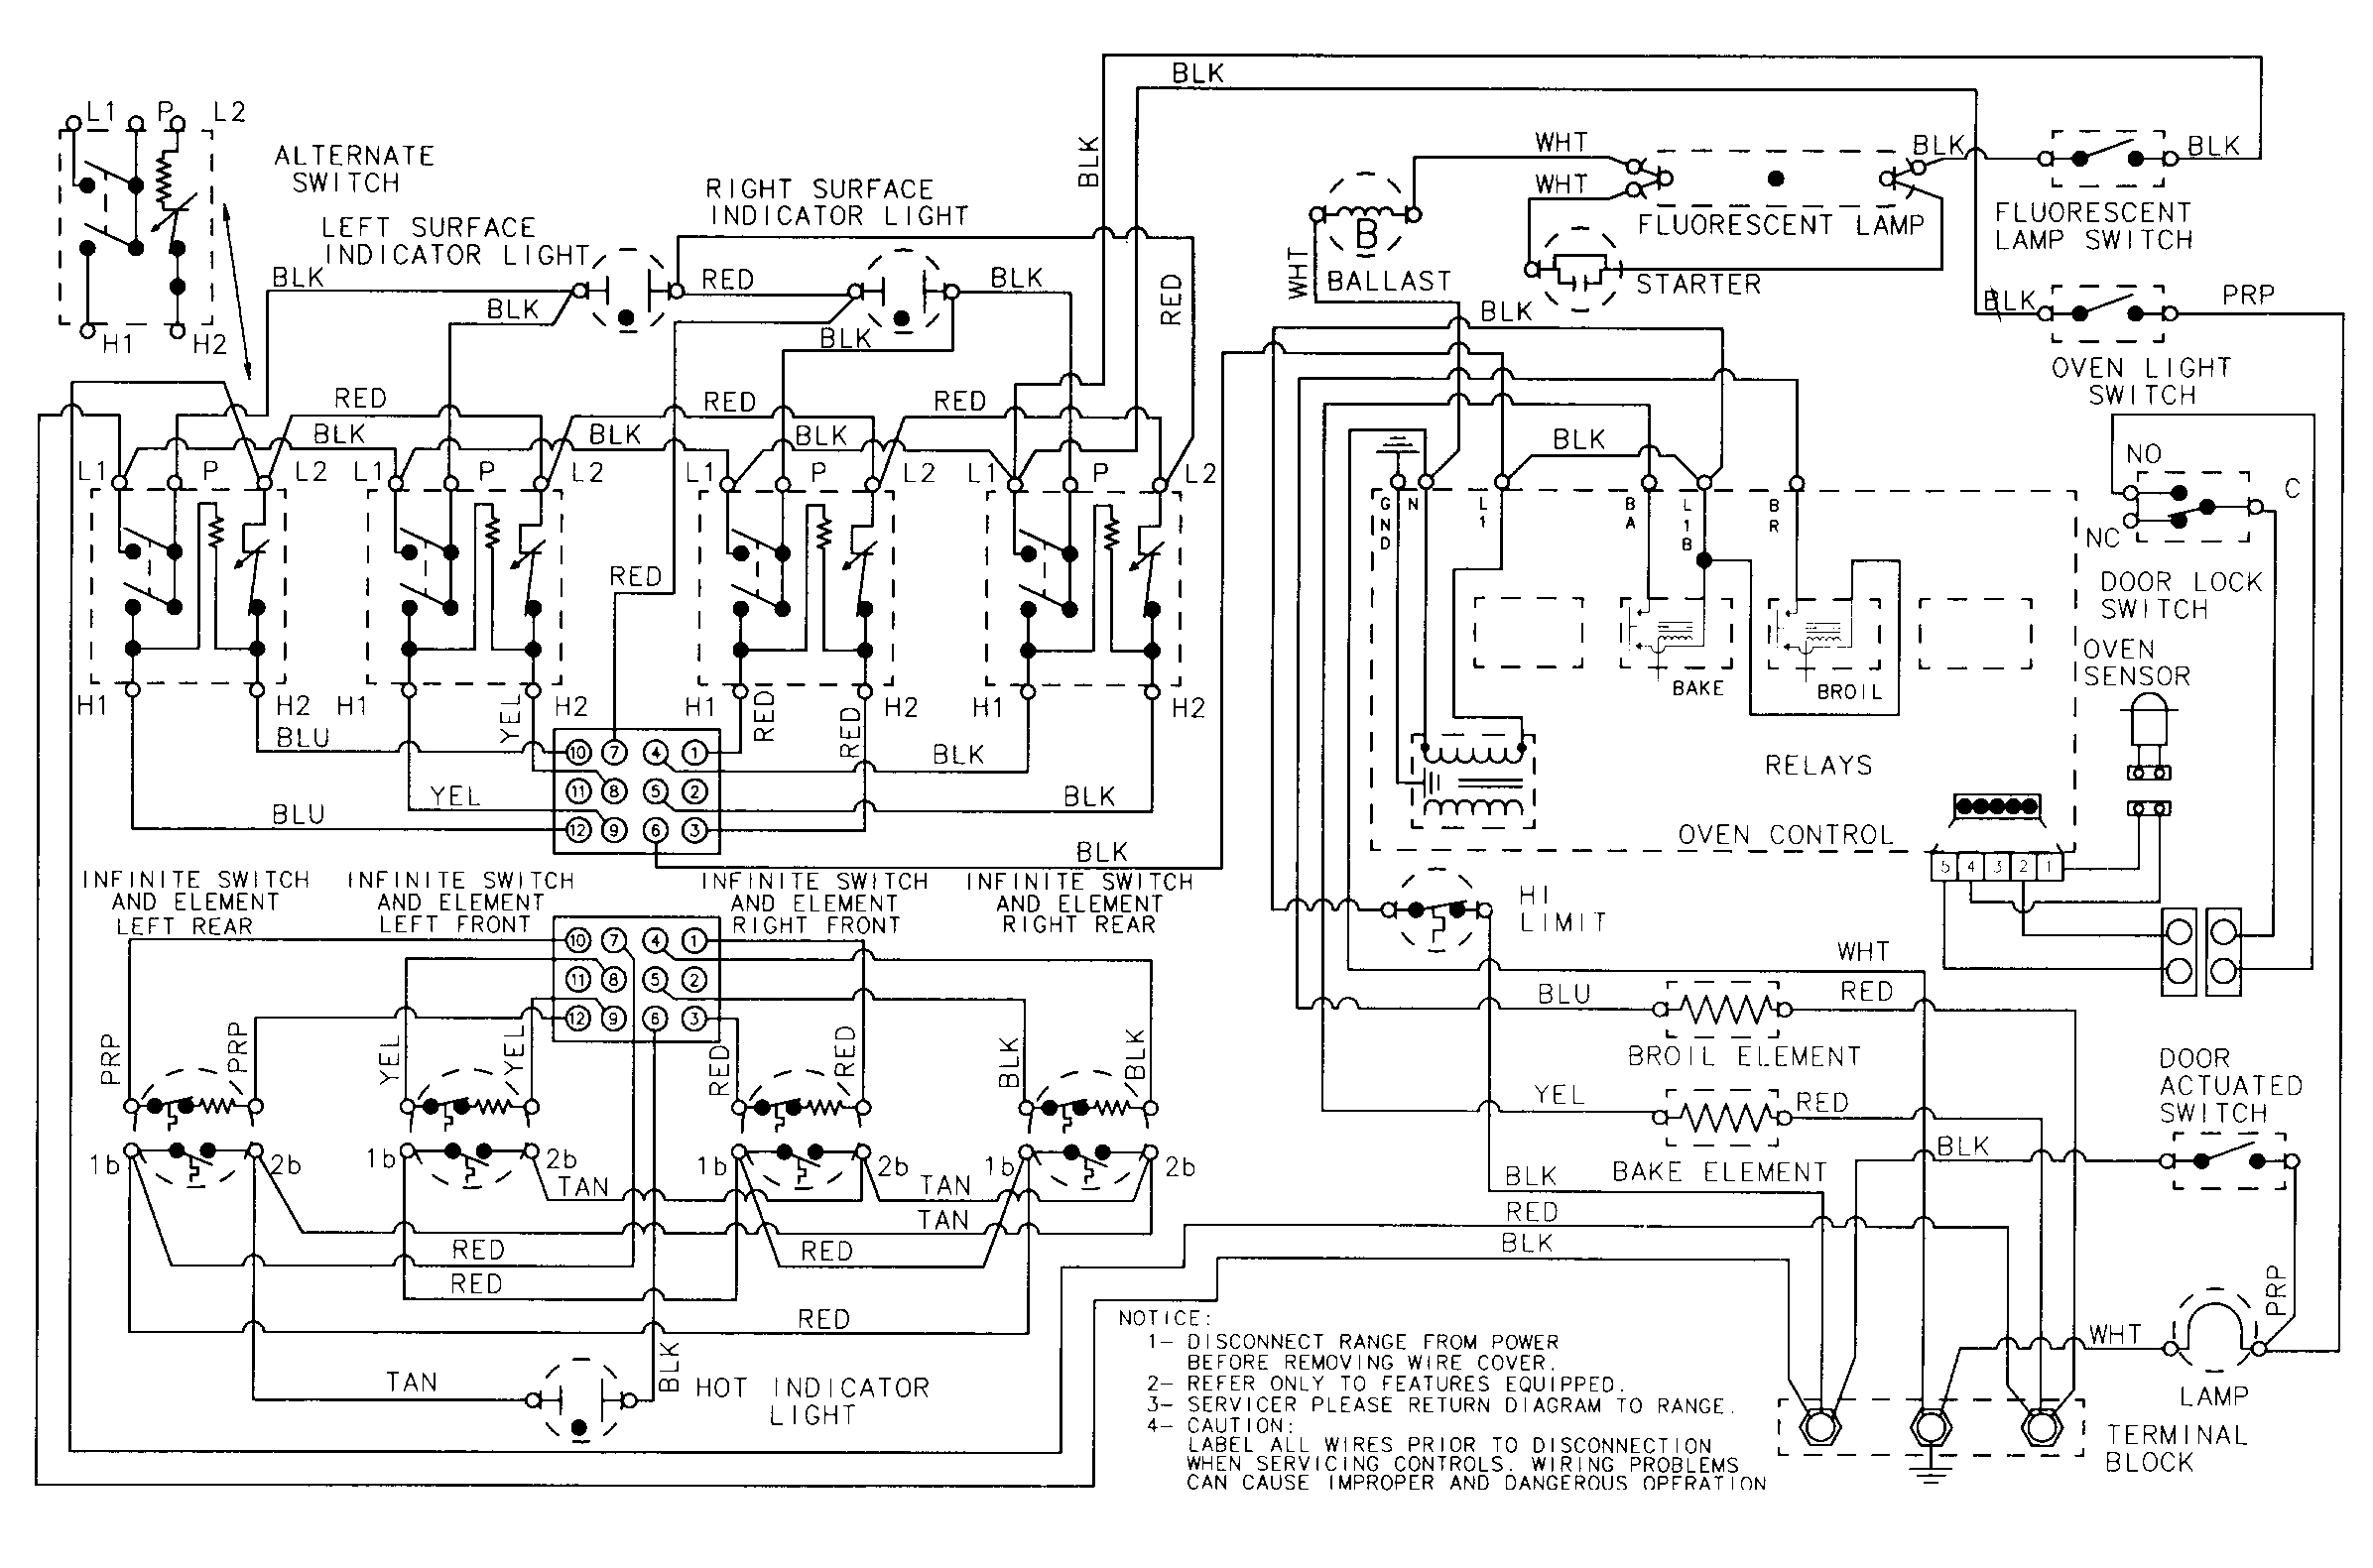 Maytag Washer Wiring Schematic | Wiring Diagram 2019 on maytag schematic diagram, electrolux washer schematics, roper washer schematics, samsung washer schematics, washing machine schematics, whirlpool washer schematics, dryer schematics, ge washer schematics, kenmore washer schematics, lg washer schematics, maytag washing machine parts diagram,